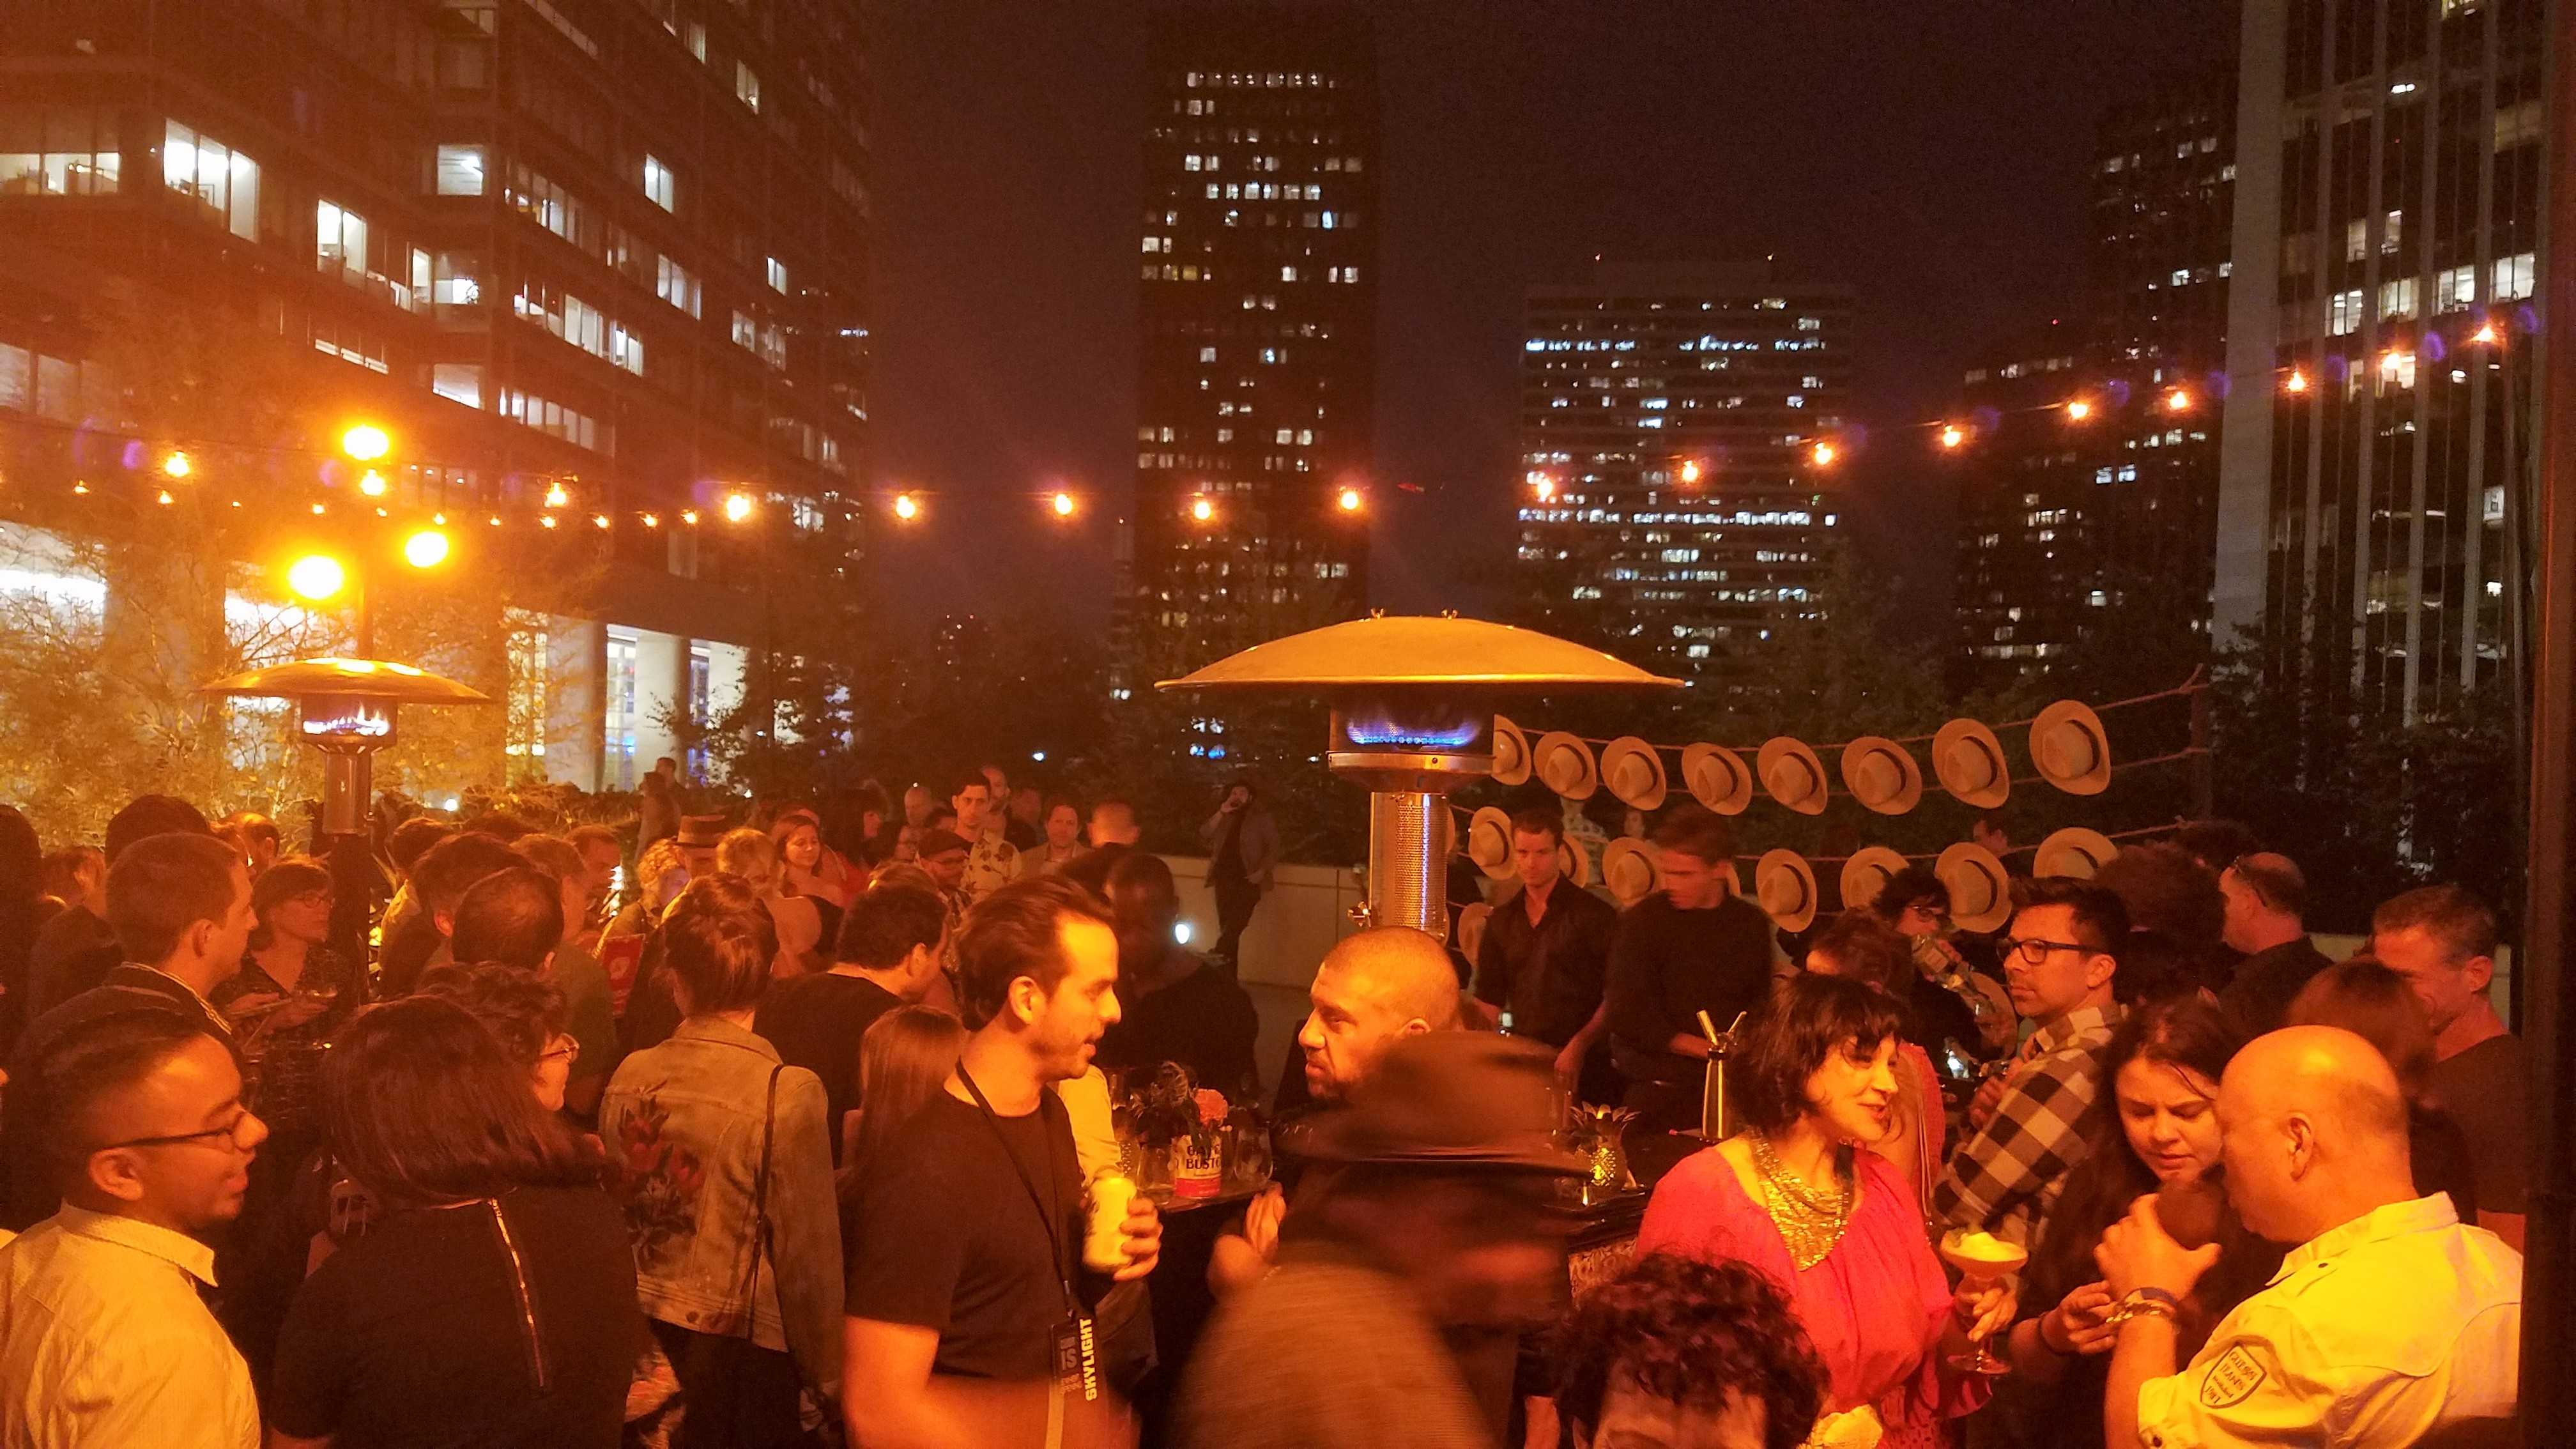 Large group of people pictured on a rooftop chatting and drinking